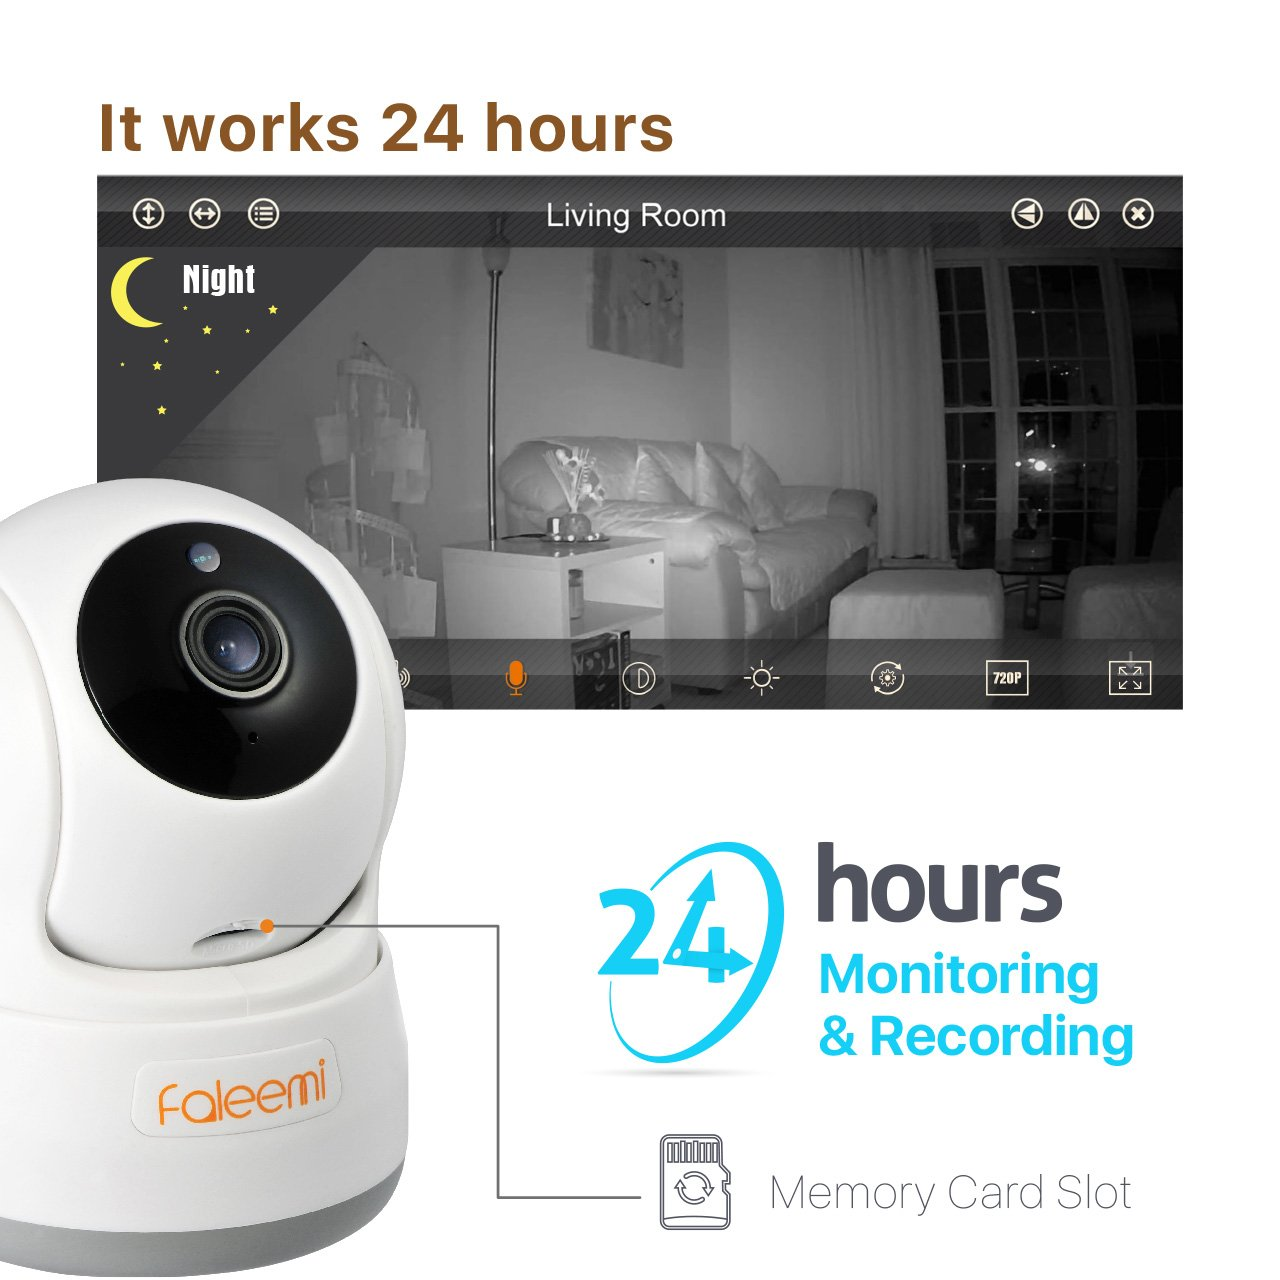 Faleemi HD Pan/Tilt Wireless WiFi IP Camera, Home Security Video Surveillance Camera with Two Way Audio, Night Vision for Baby/Elder/Pet/Office Monitor Nanny Cam FSC776W (White) by faleemi (Image #3)